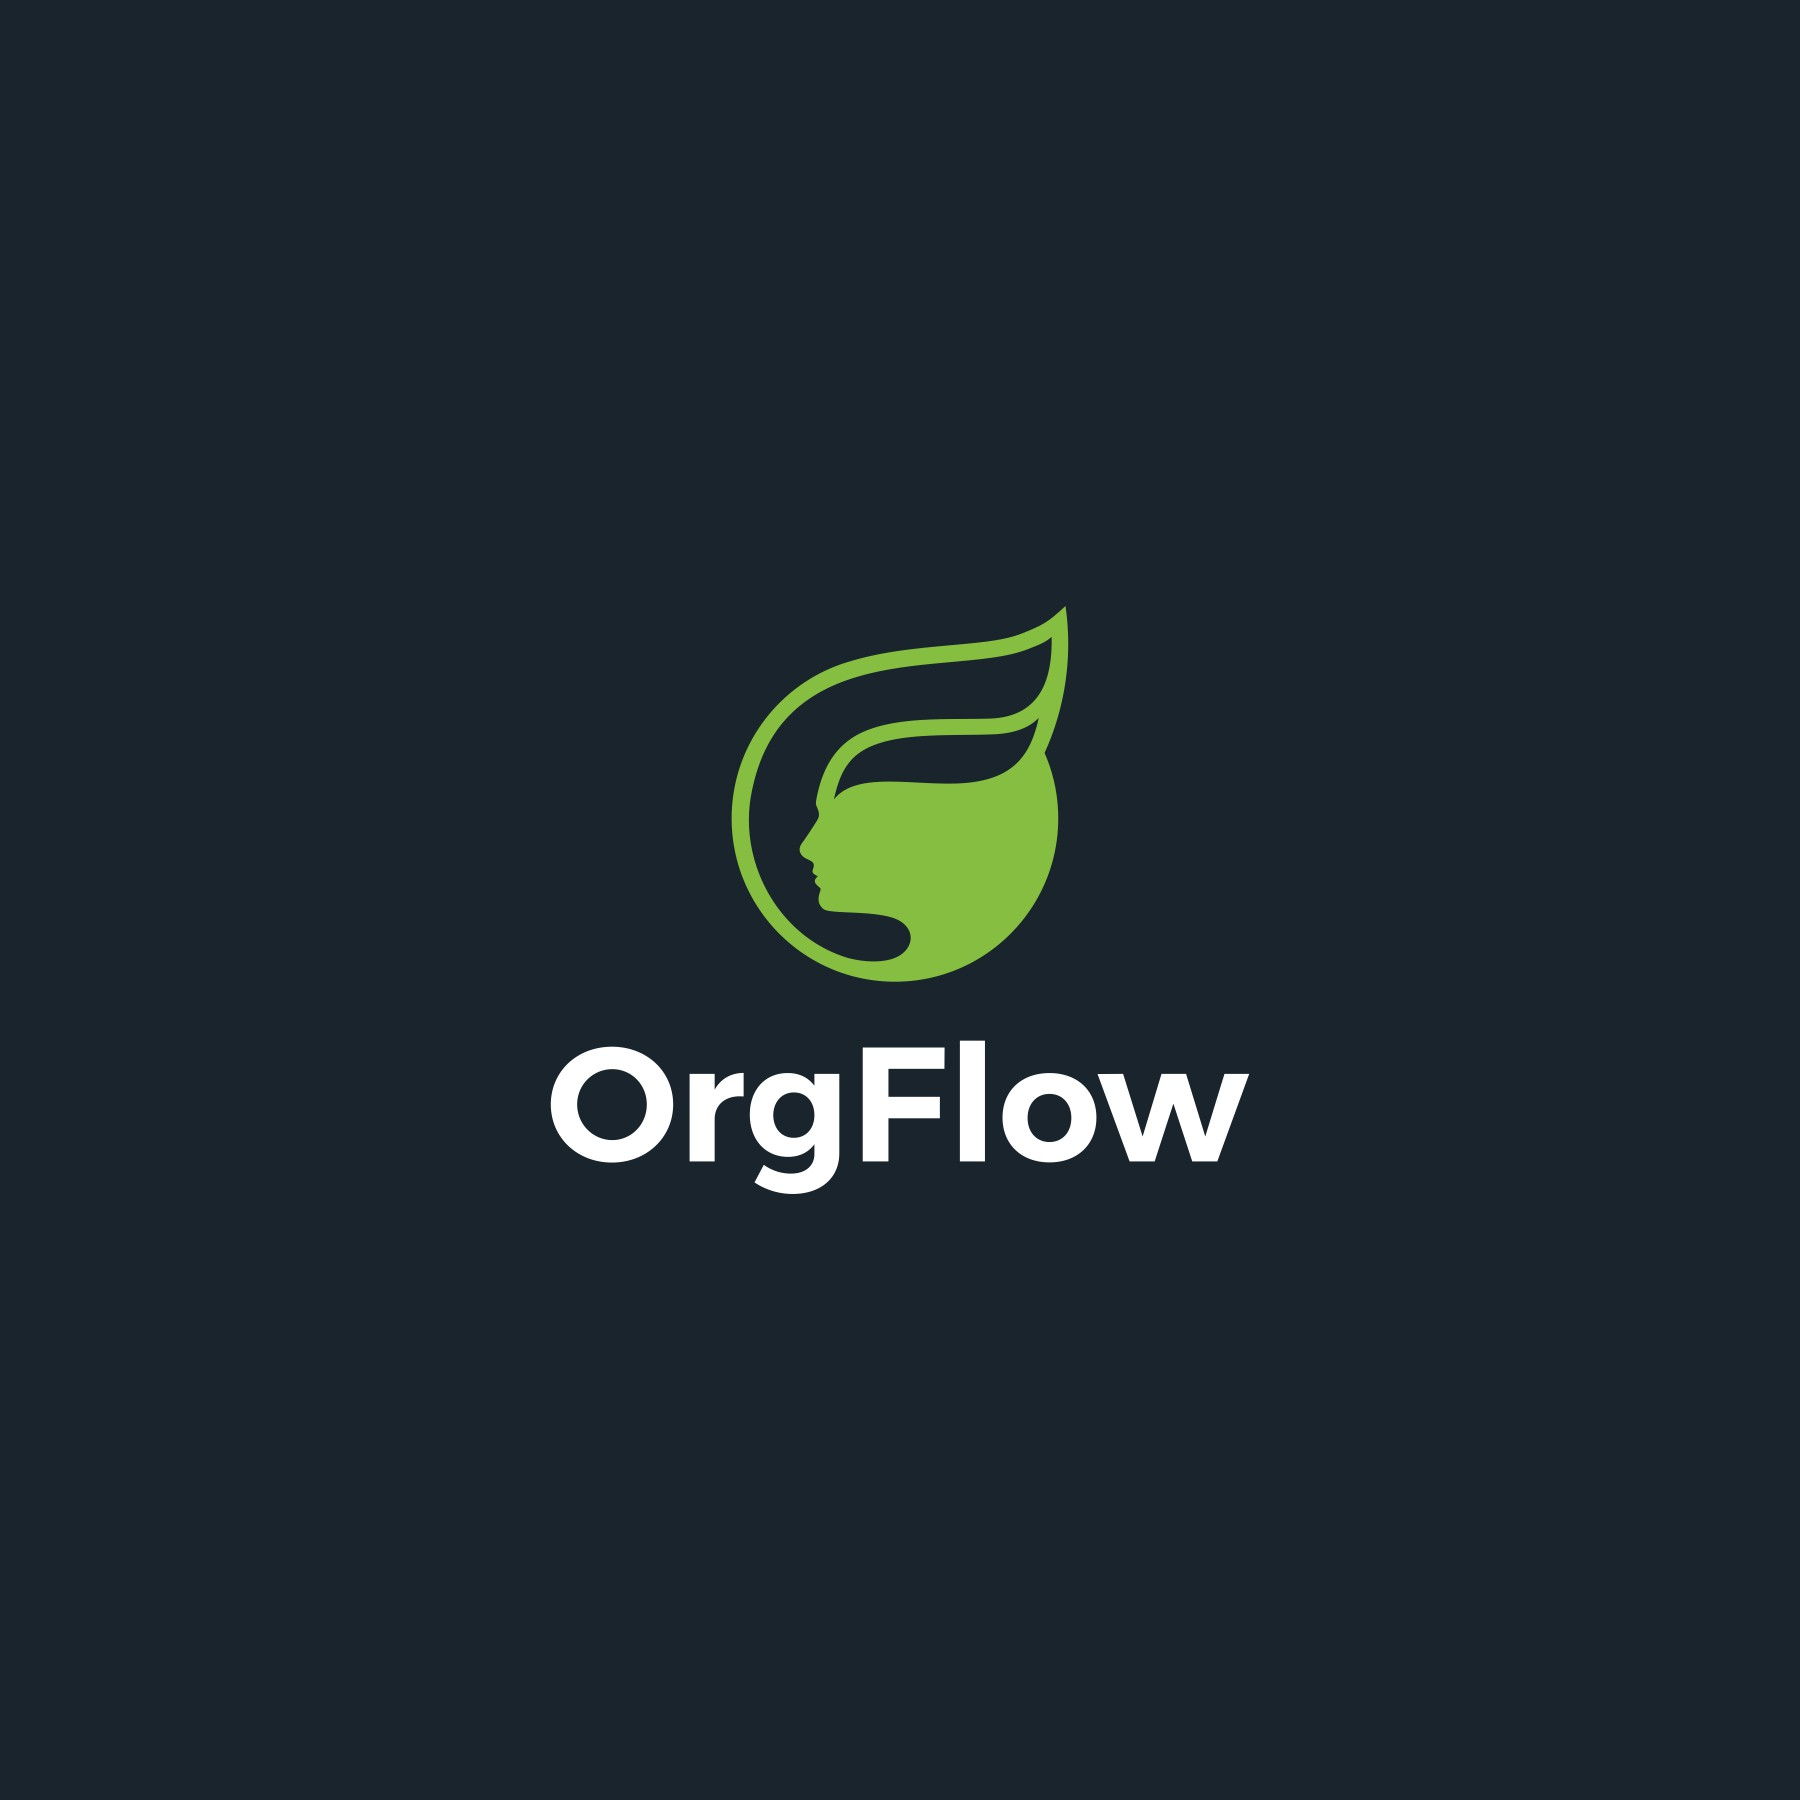 Powerful branding for IT startup in agile software development and CRM domain